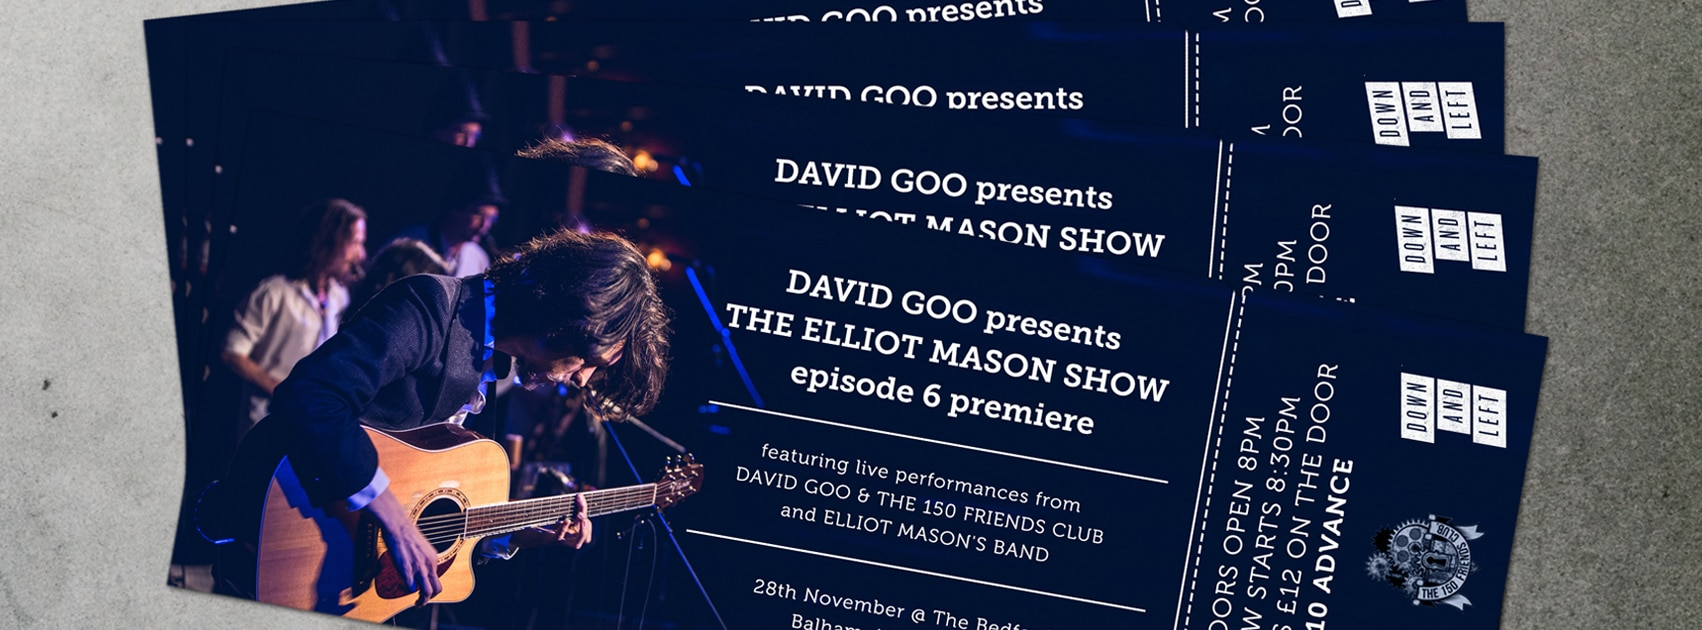 David Goo Presents 'The Elliot Mason Show, Episode 6' Premiere 1